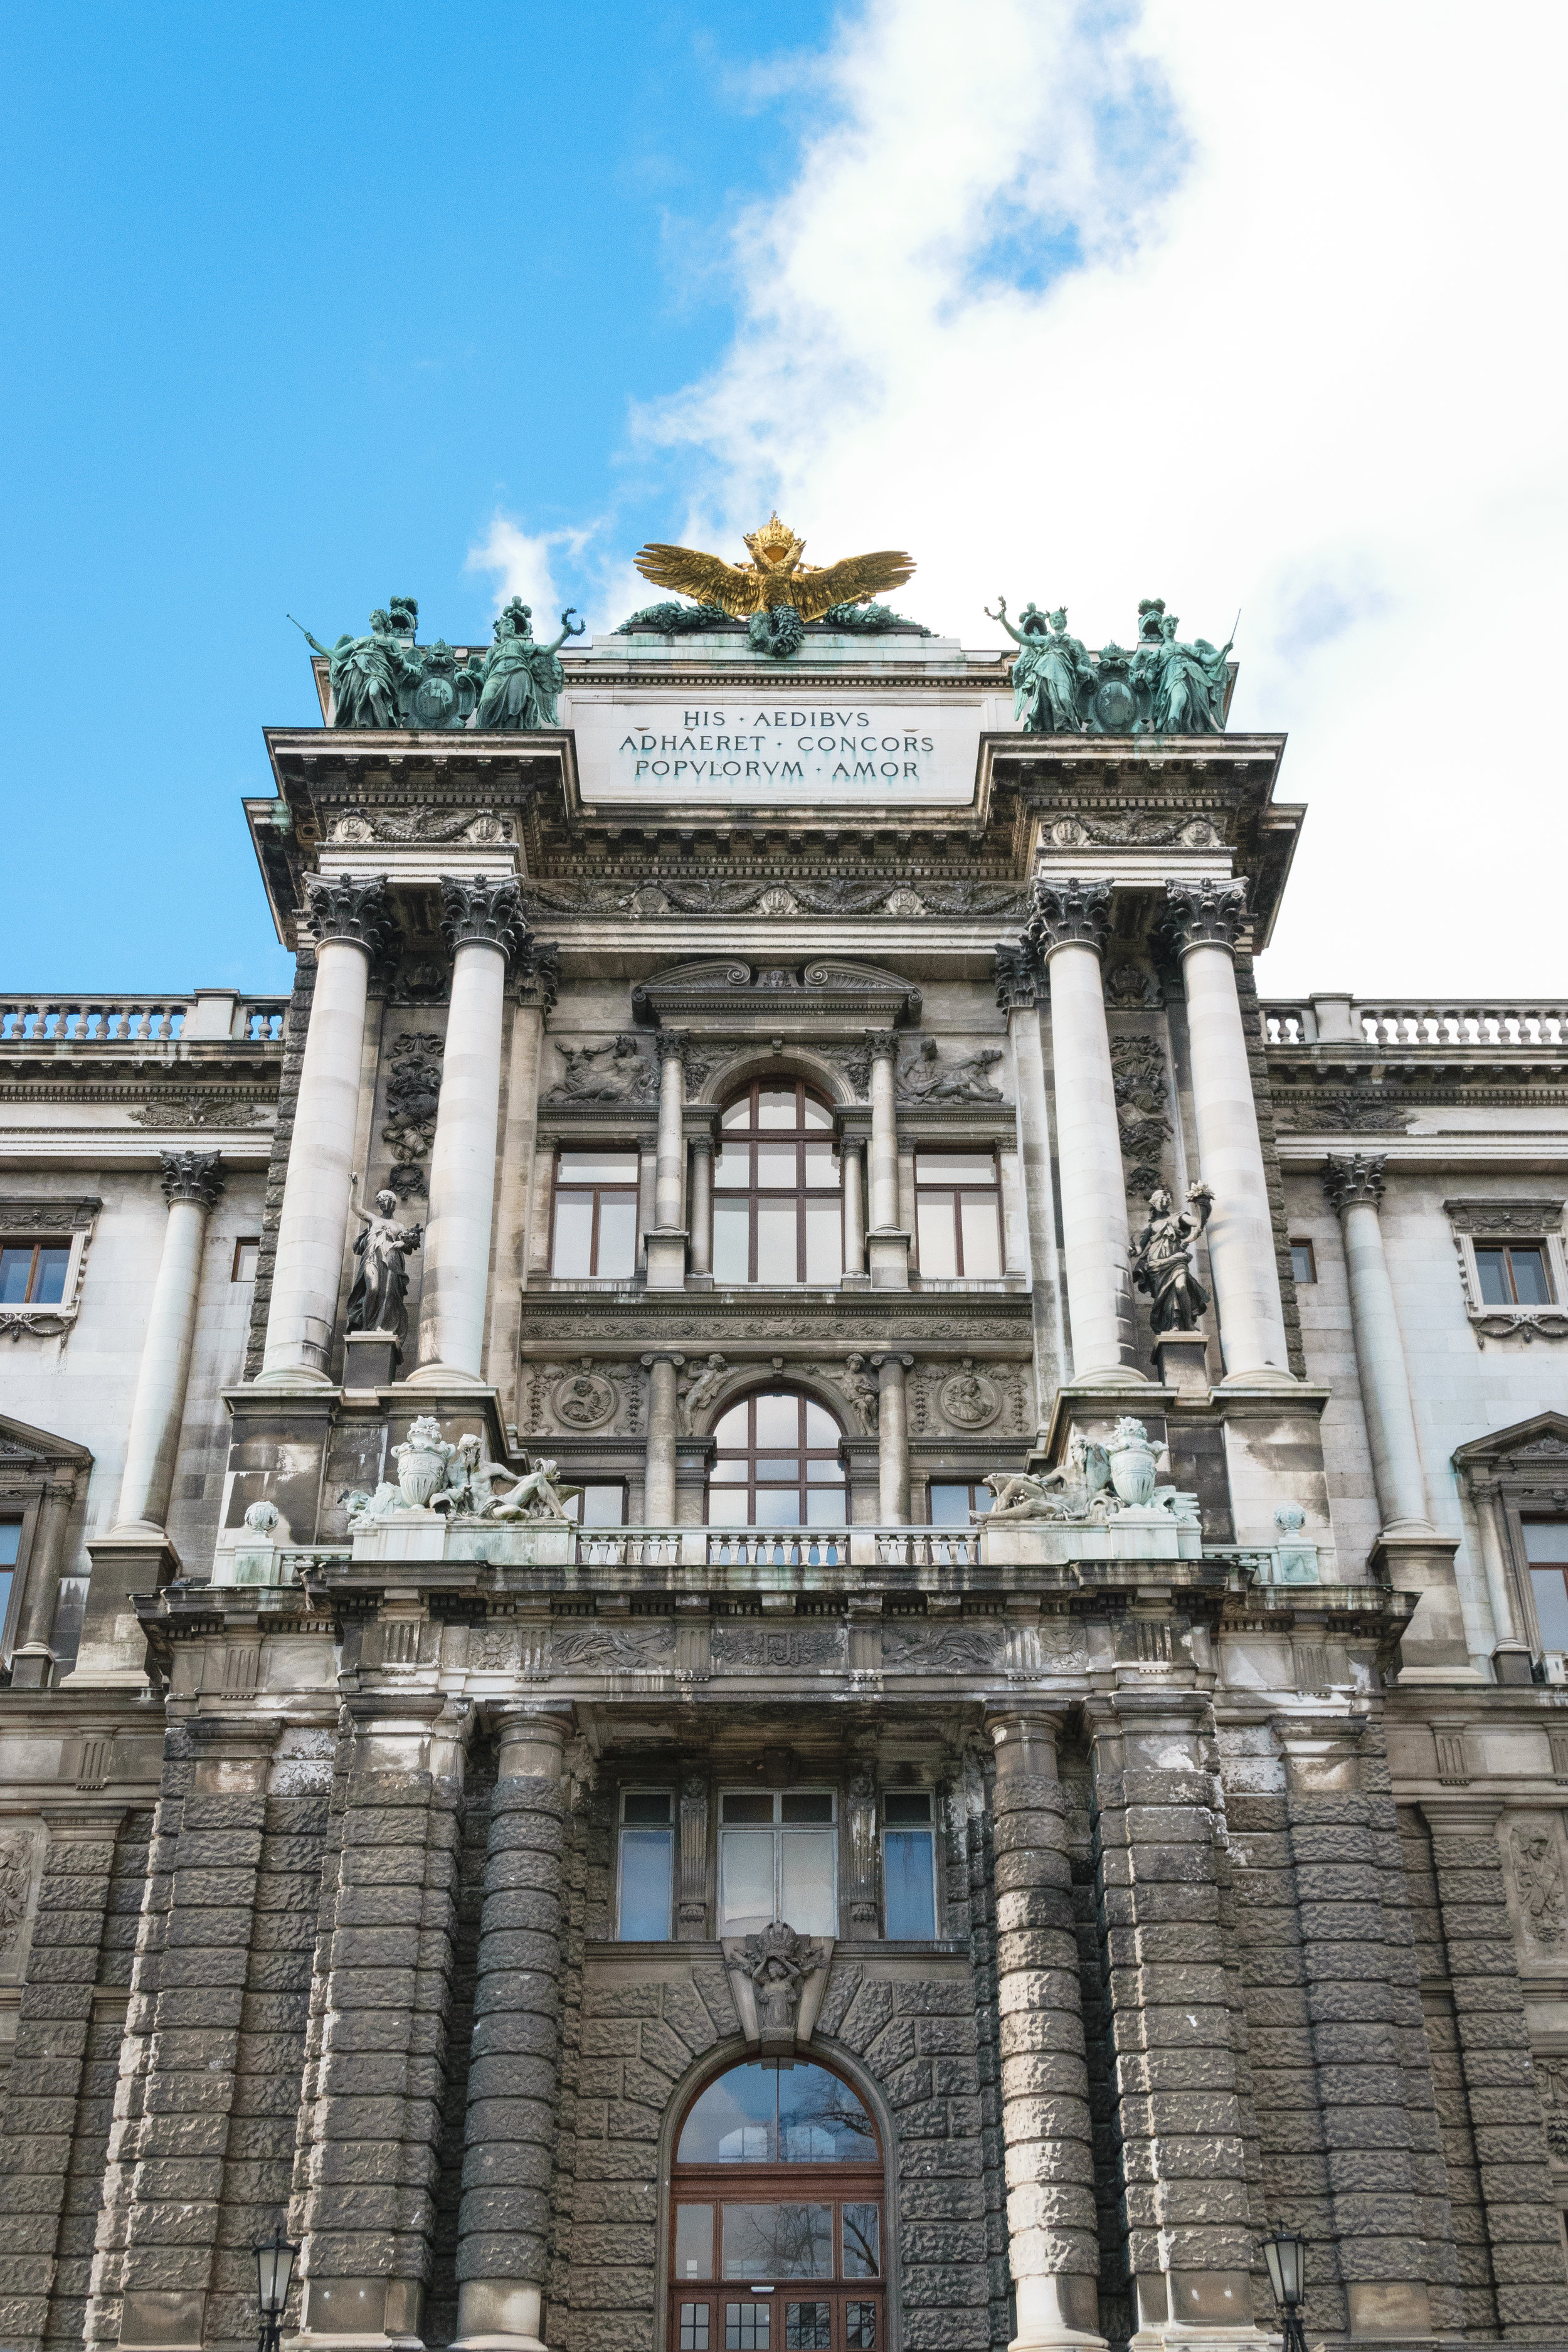 Weltmuseum (also a wing of the Hofburg Palace)